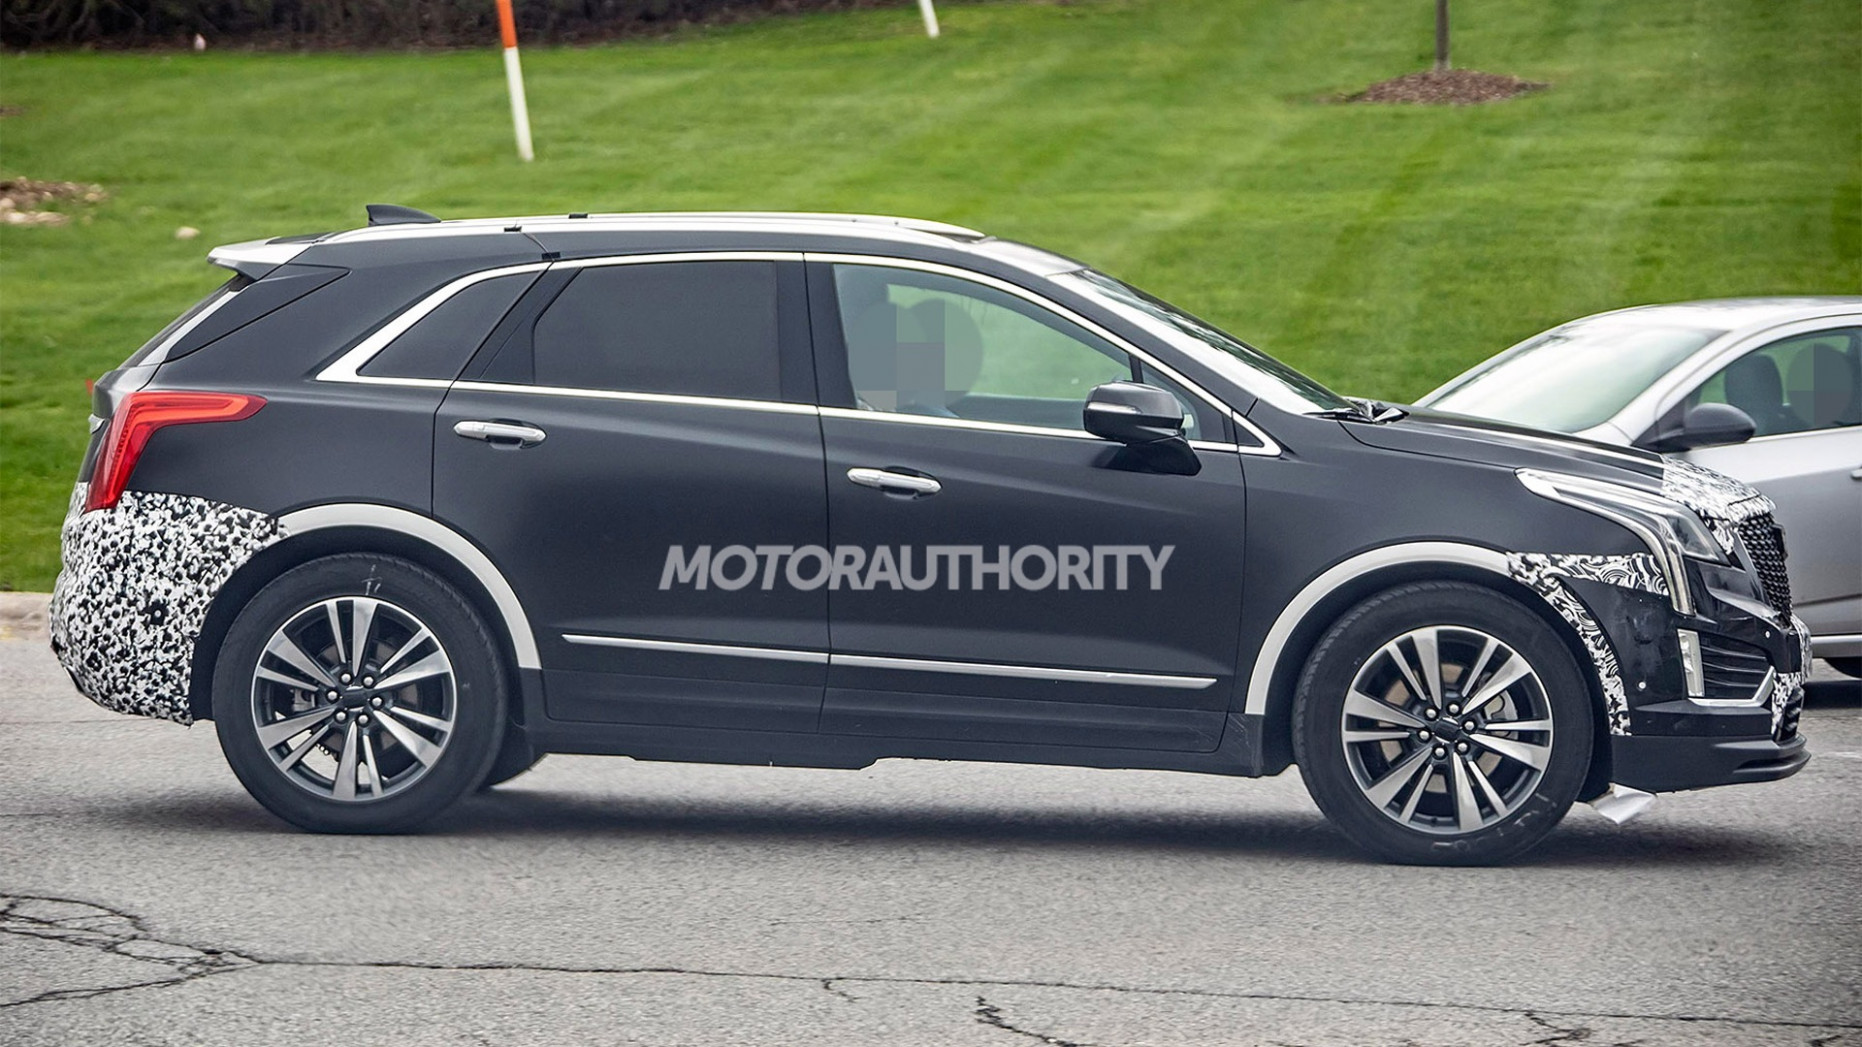 Concept and Review 2022 Spy Shots Cadillac Xt5